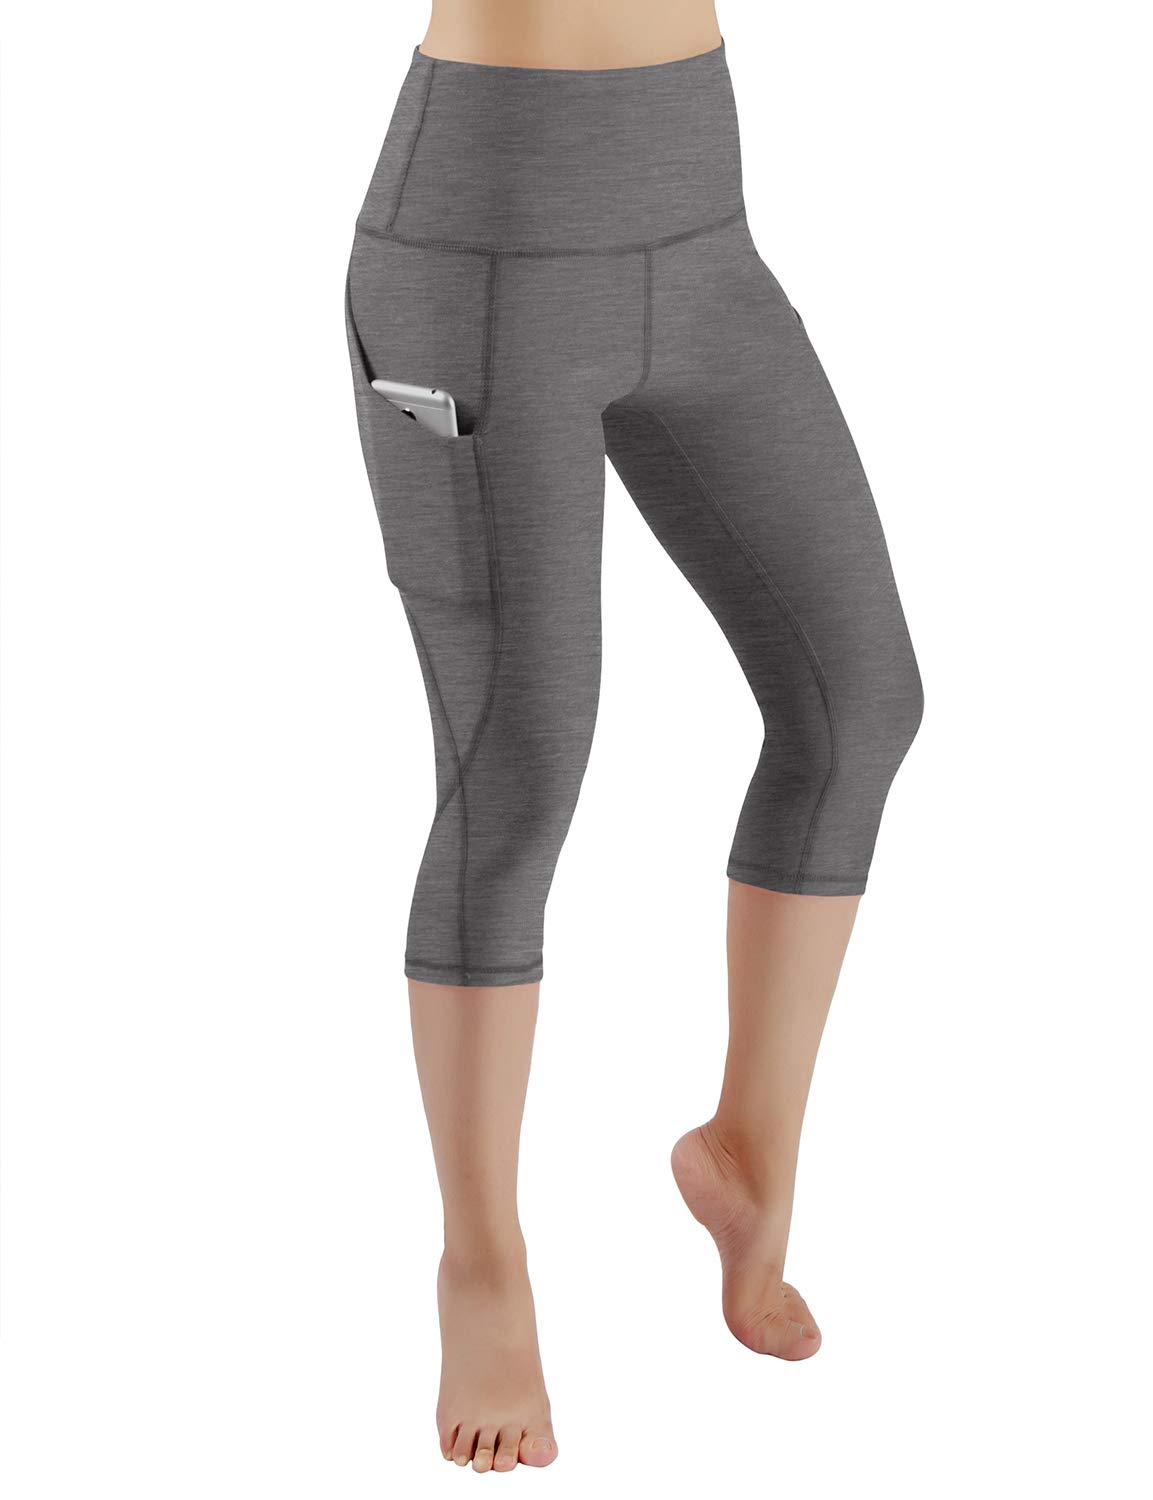 ODODOS High Waist Out Pocket Yoga Capris Pants Tummy Control Workout Running 4 Way Stretch Yoga Leggings,Gray,X-Small by ODODOS (Image #2)